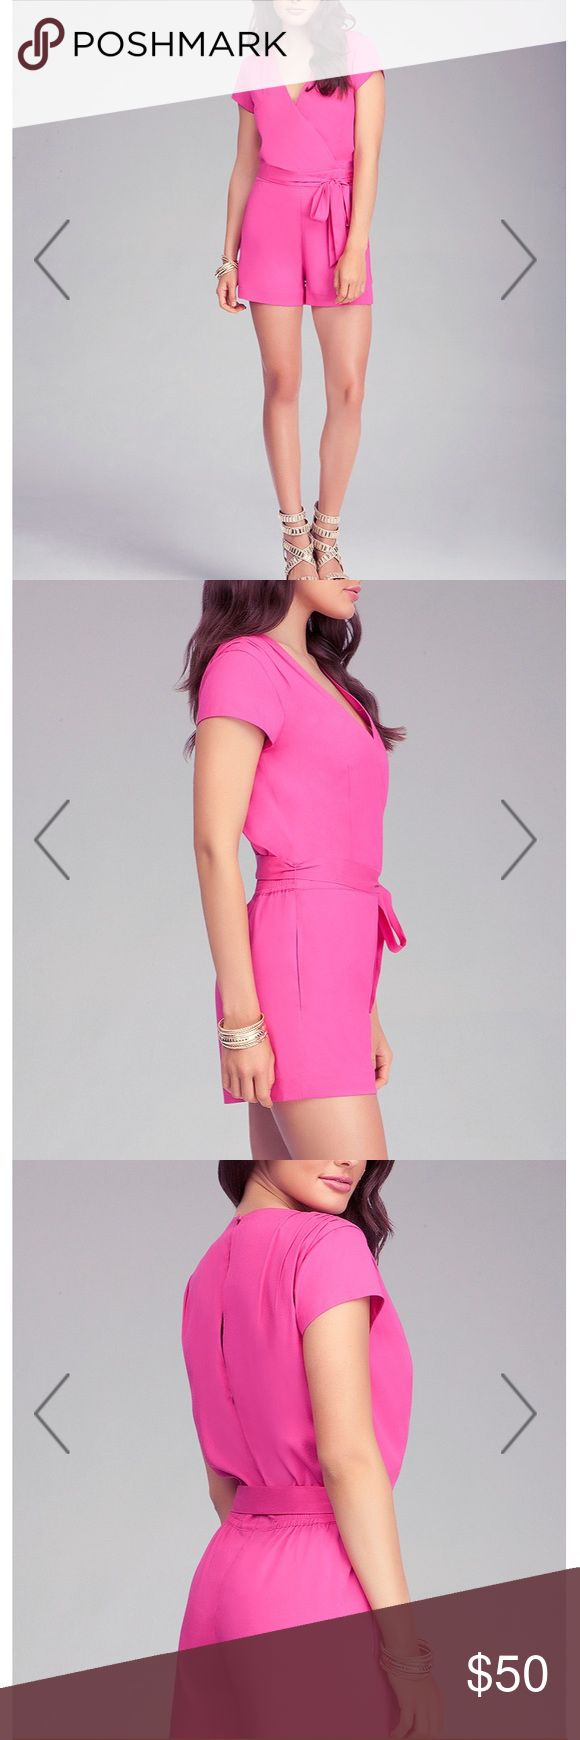 Bebe Hot Pink Romper Show off your legs in this flirty eye catching romper. pair with strapping heels and a metallic clutch for a fun night out. Waist sash not included. bebe Dresses